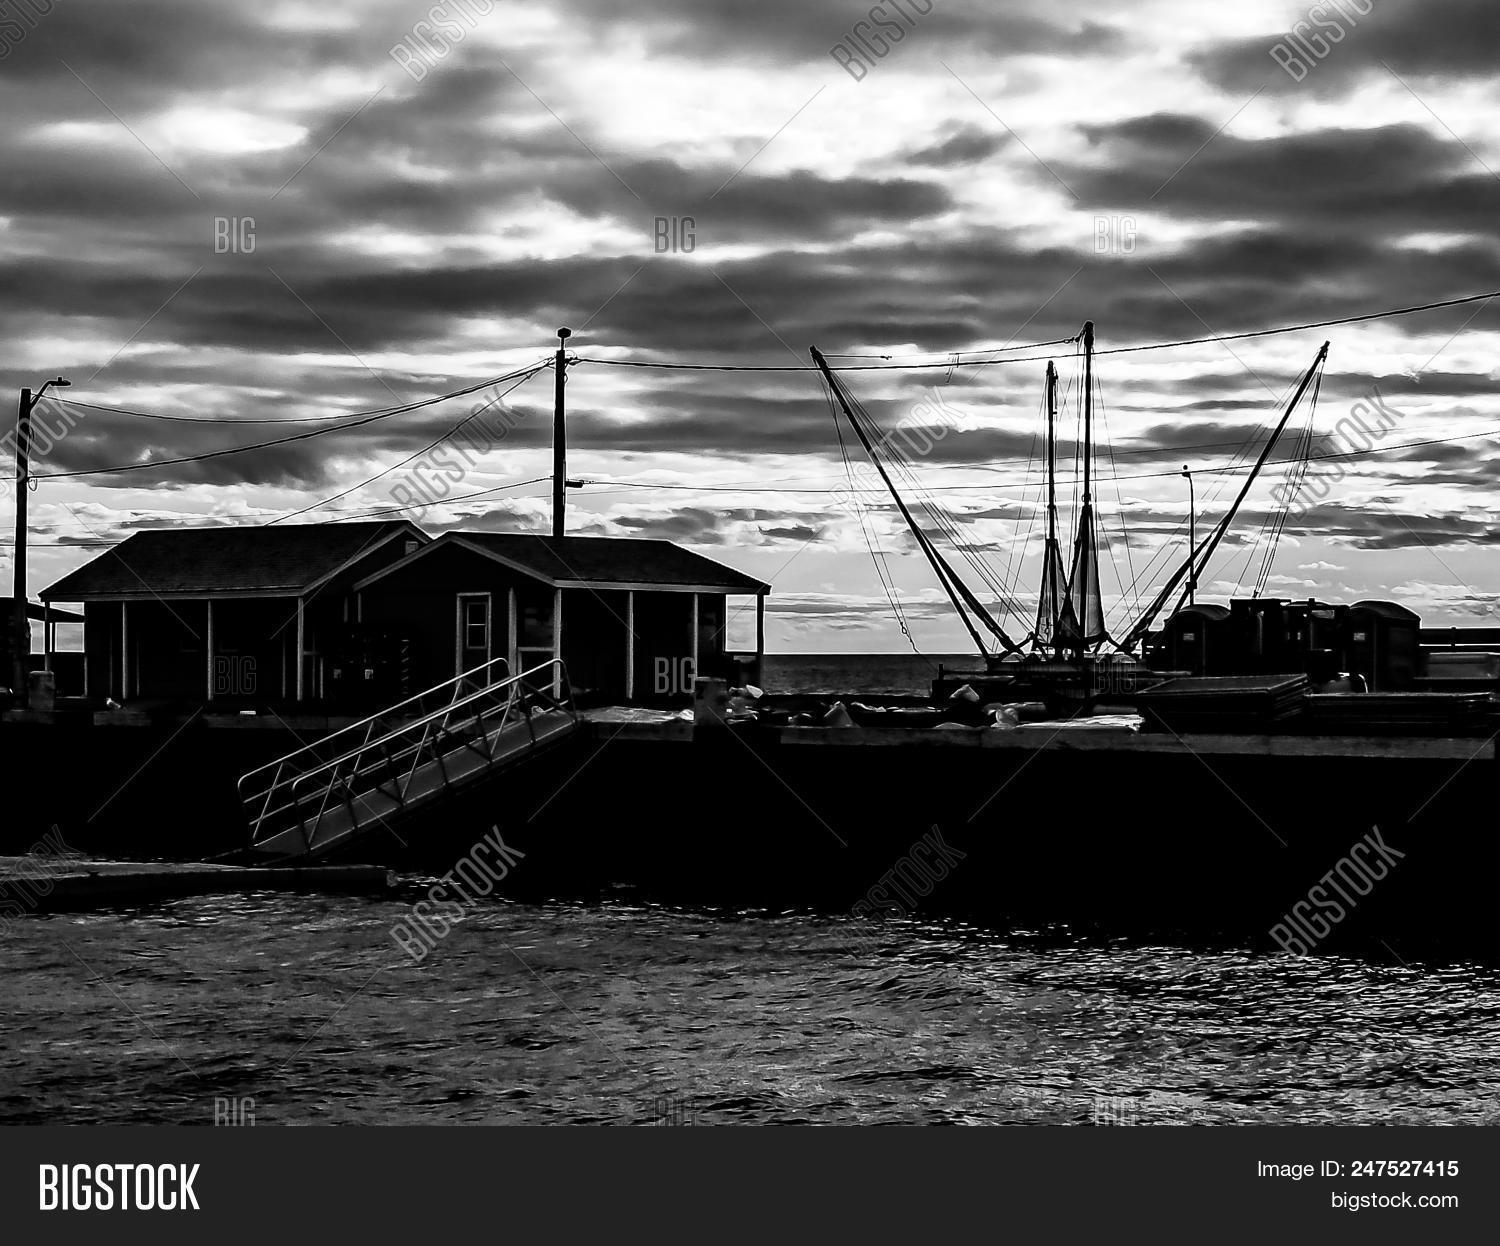 An artsy view in black and white of a fishing boat on prince edward island